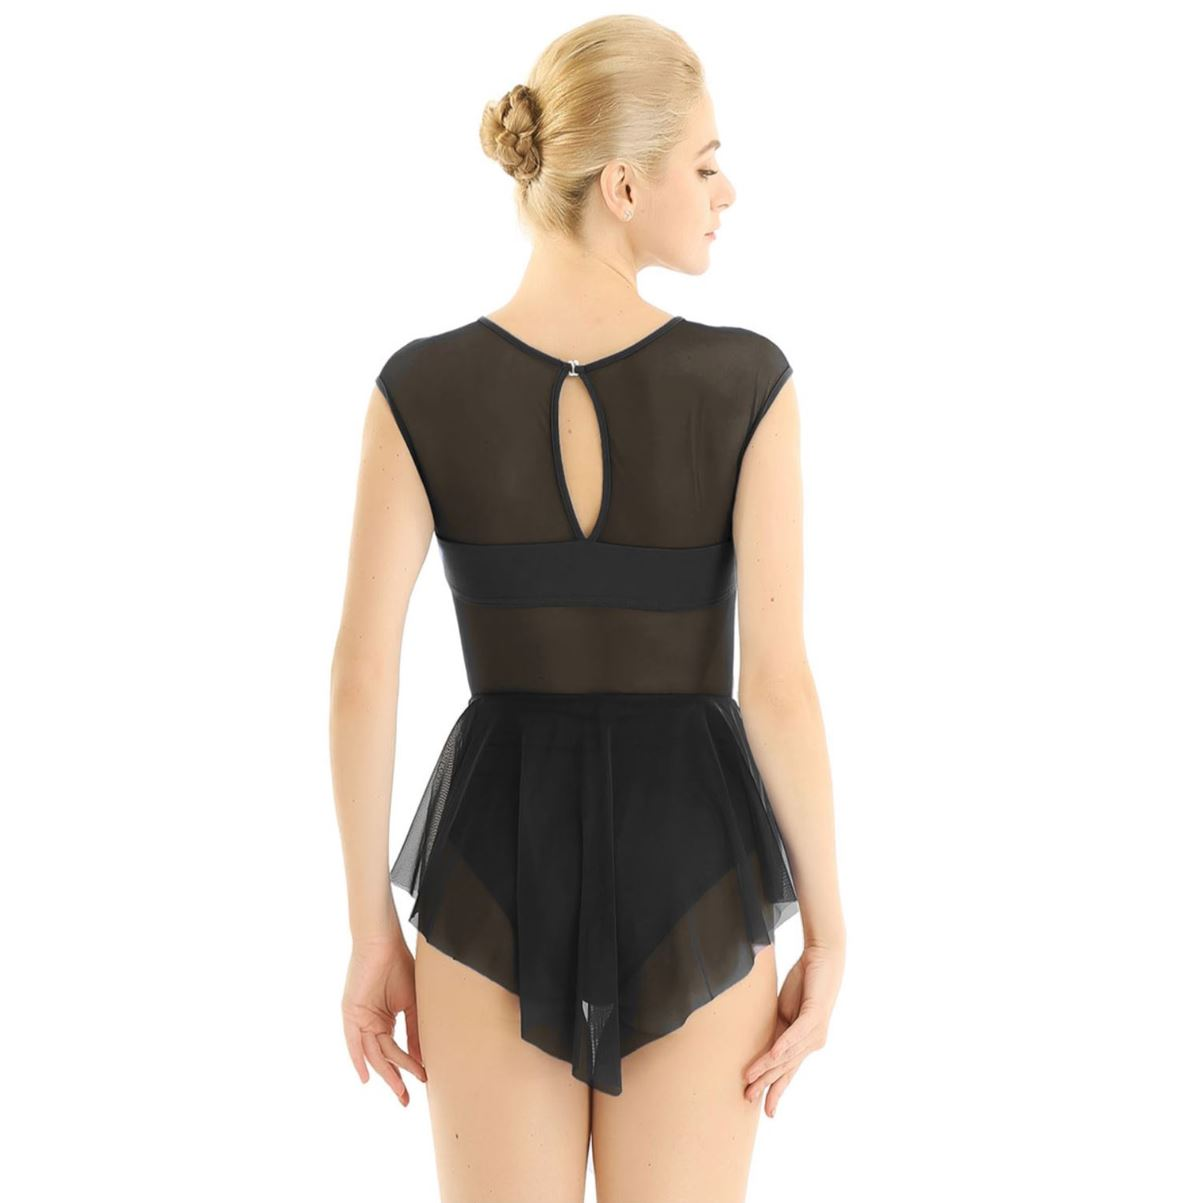 Black in colour, back view of women's leotard with front cut out design, mesh skirt attached. Pas de bourree dancewear. Pasdebourreedancewear.